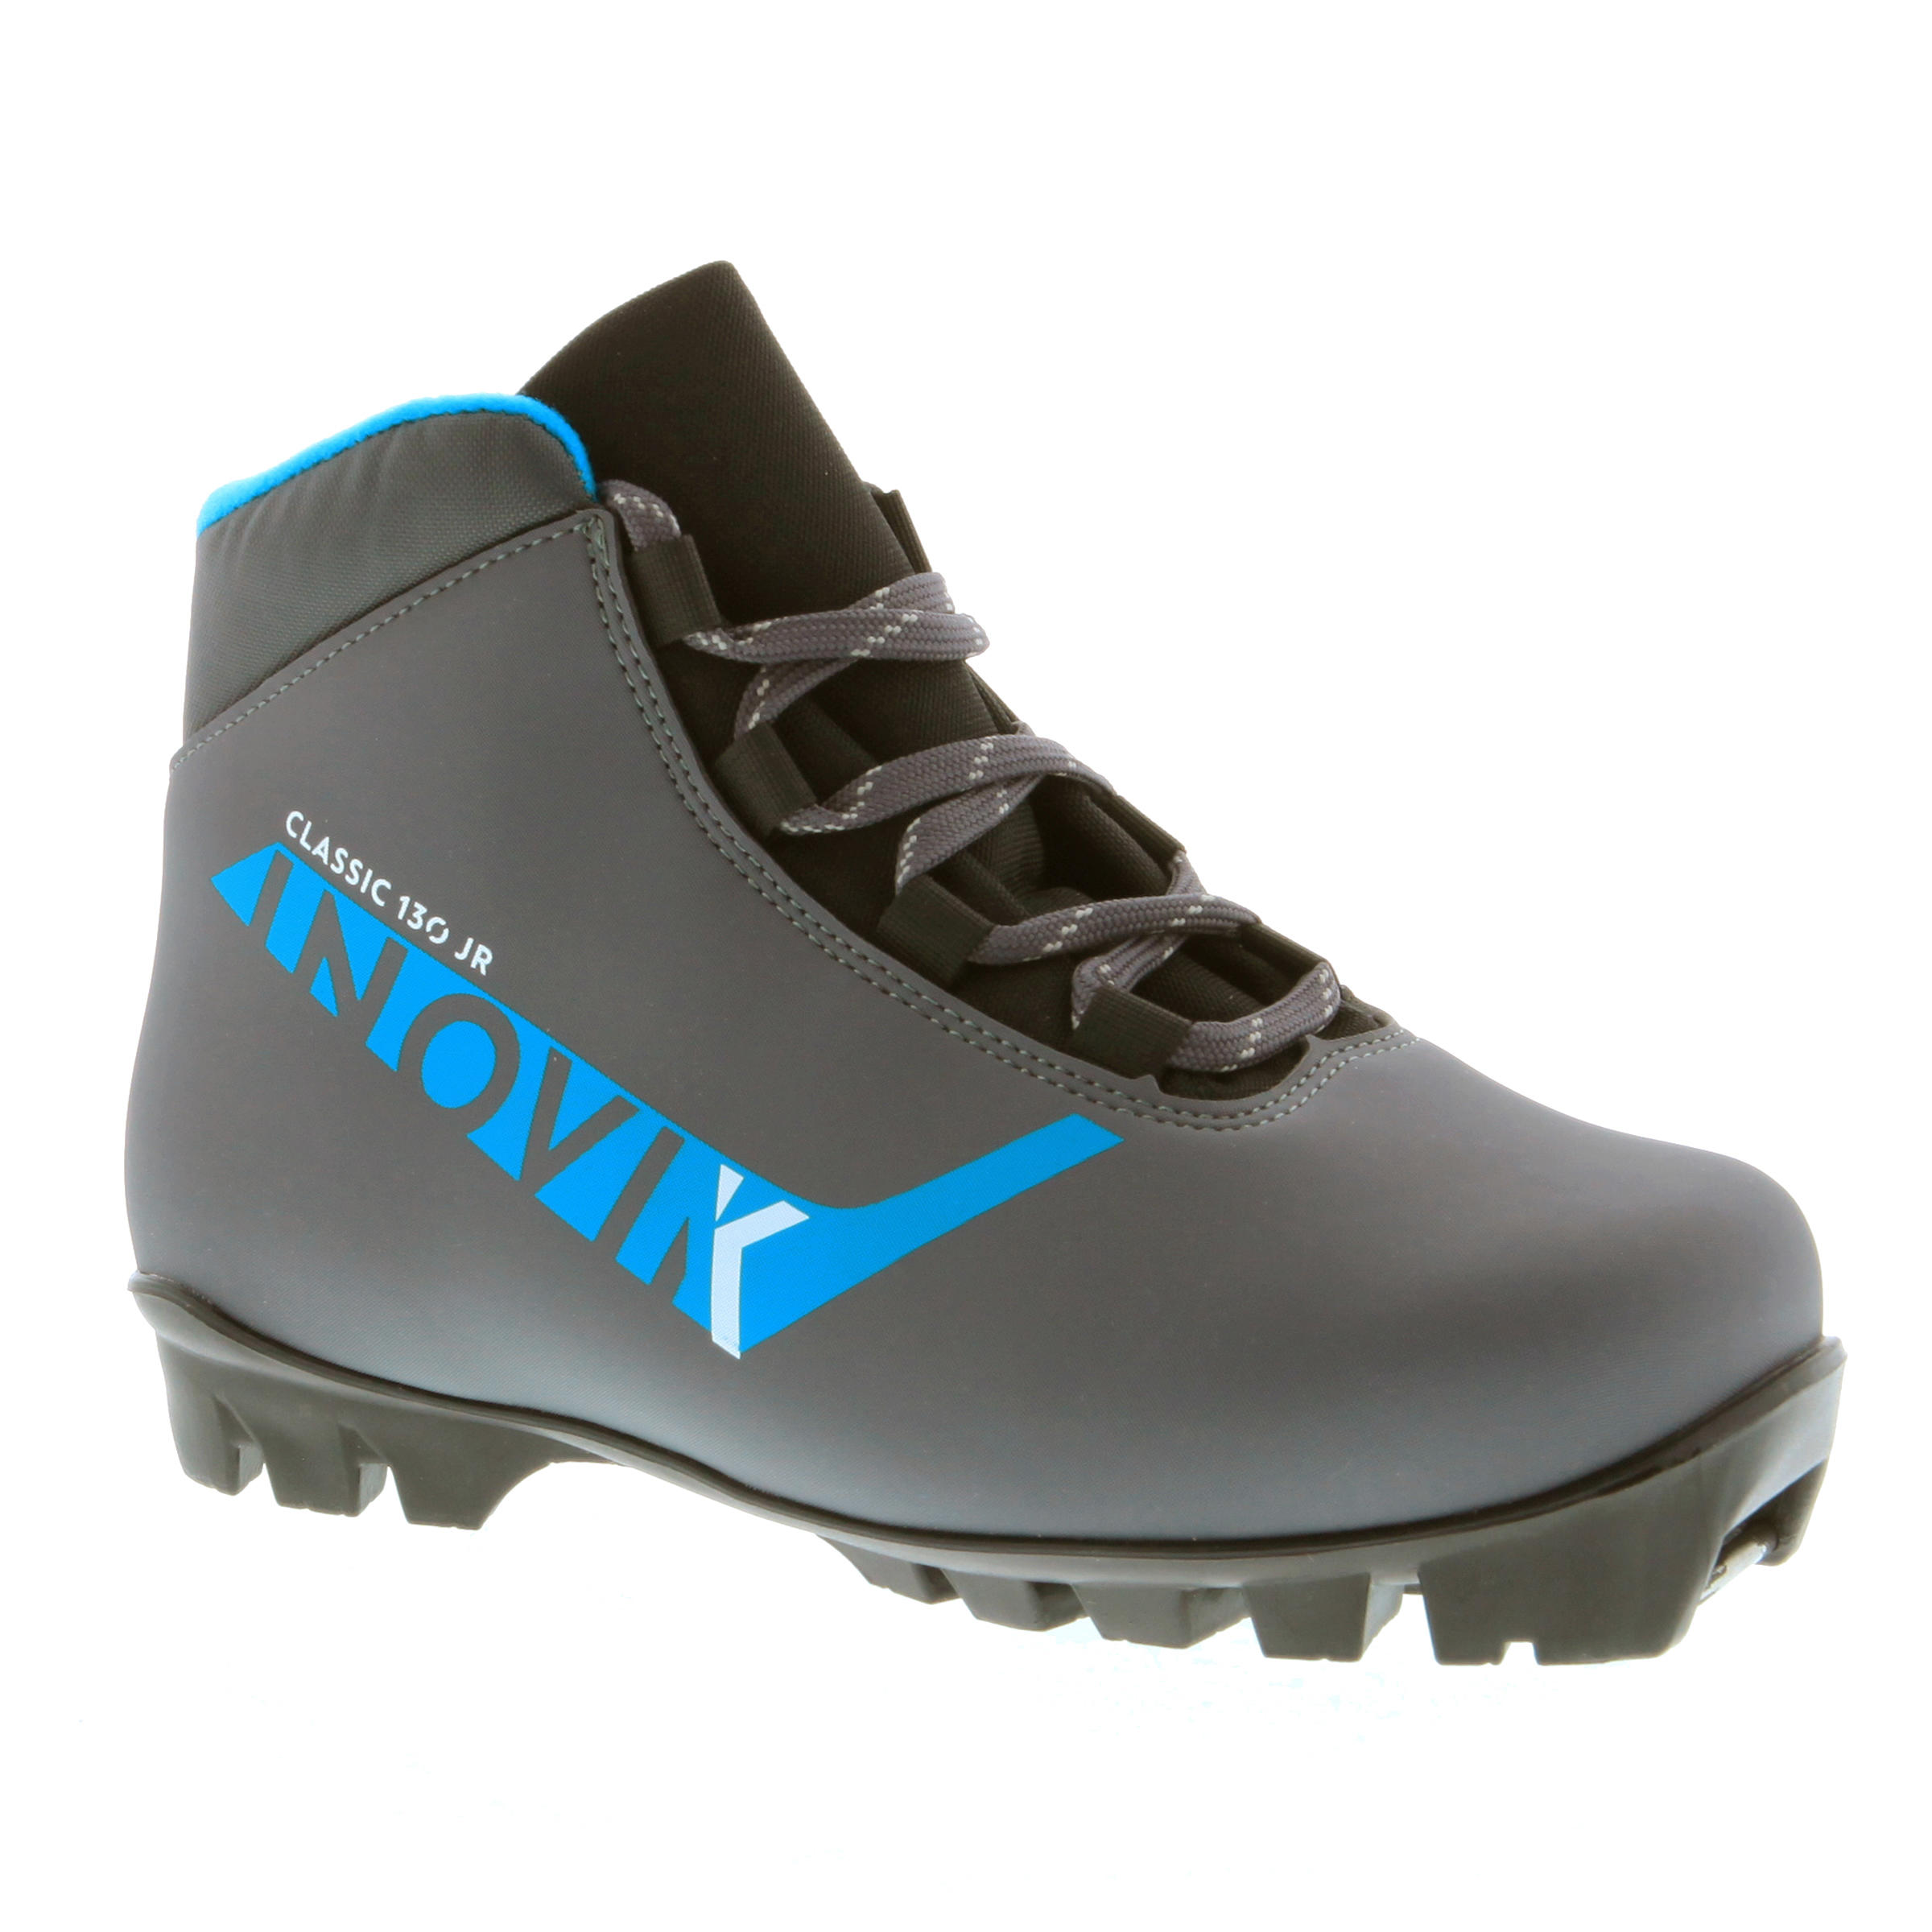 Xc s 130 Classic Junior Cross-Country Skiing Boots - Grey